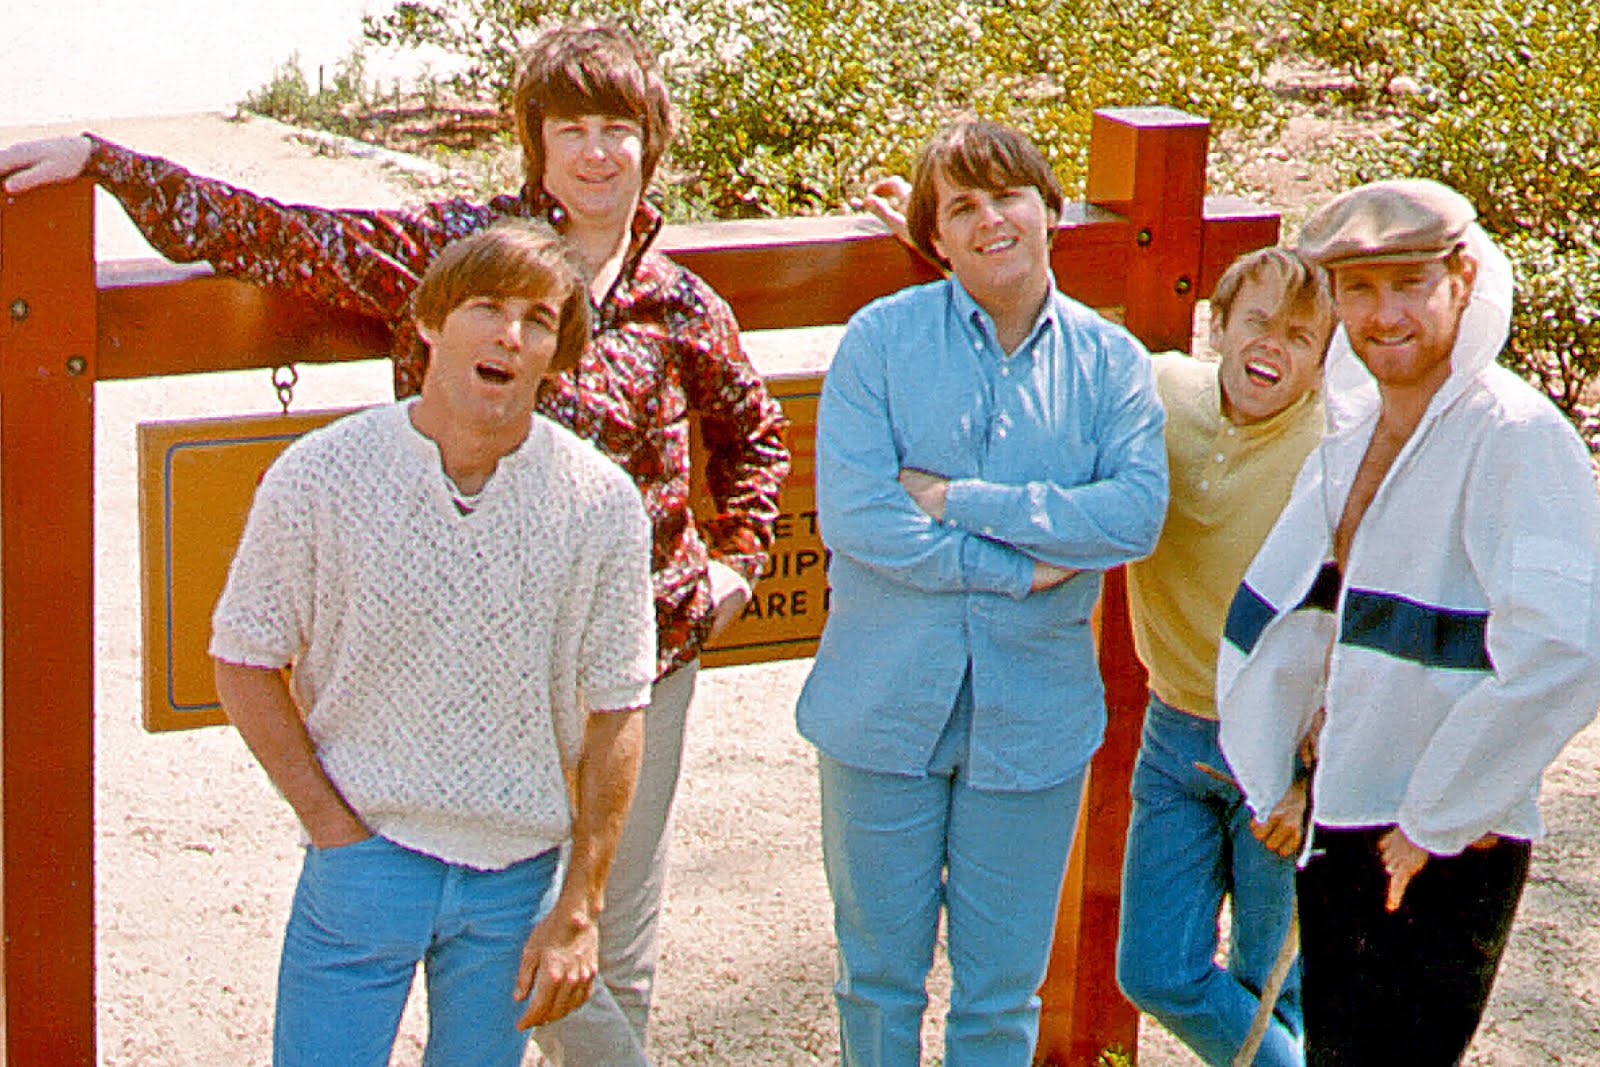 JULY 2020 FEATURED ARTIST OF THE MONTH - THE BEACH BOYS!